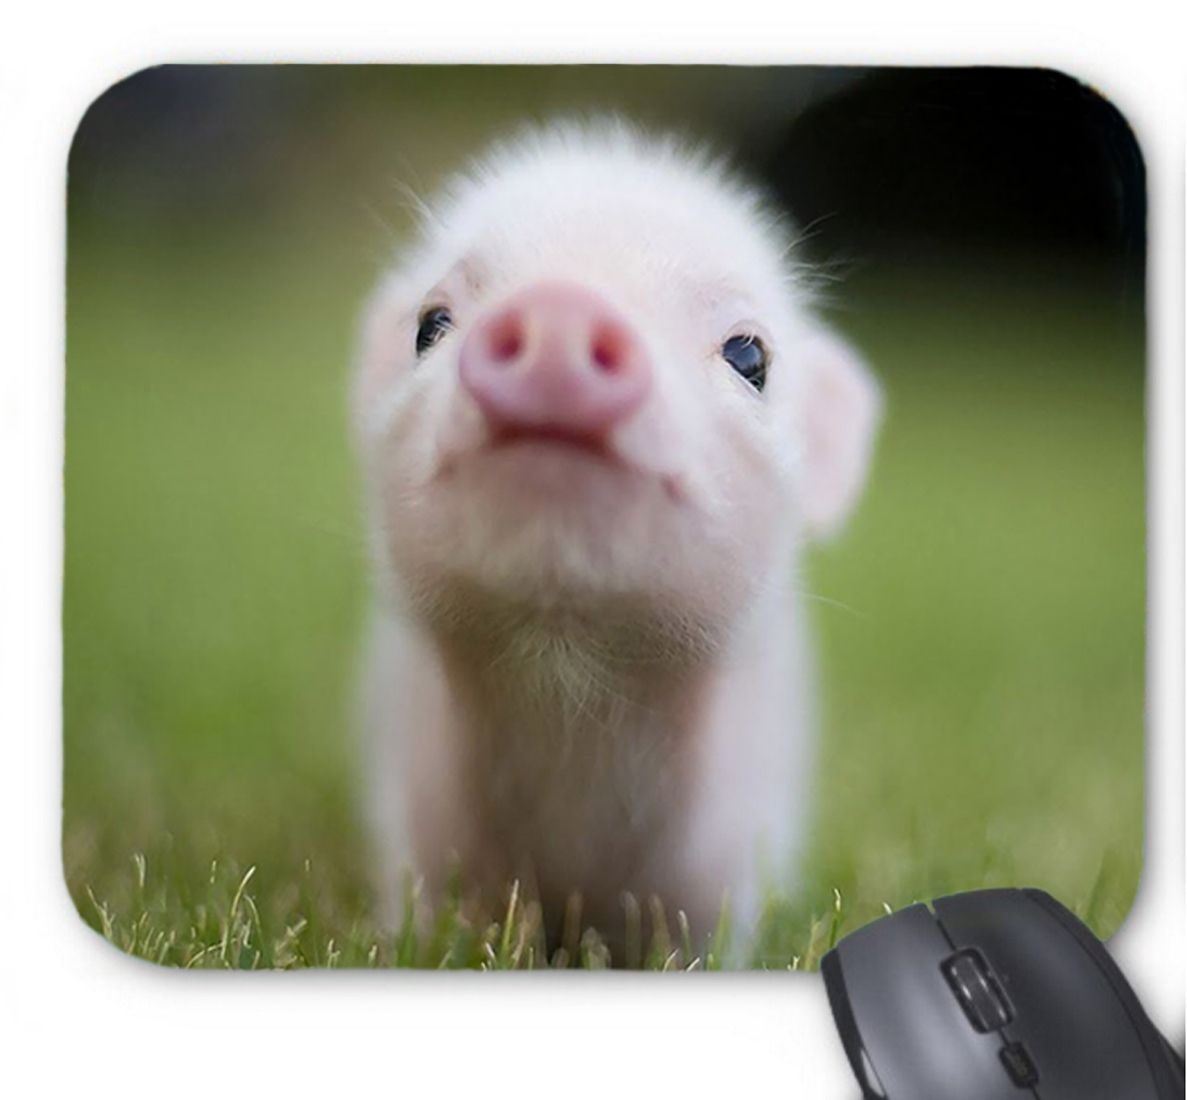 Cute Baby Teacup Pigs Non Slip Mouse Pad Amazon Adorable Appearance Small Dp B01HRKR2HOieUTF8Version1entries0